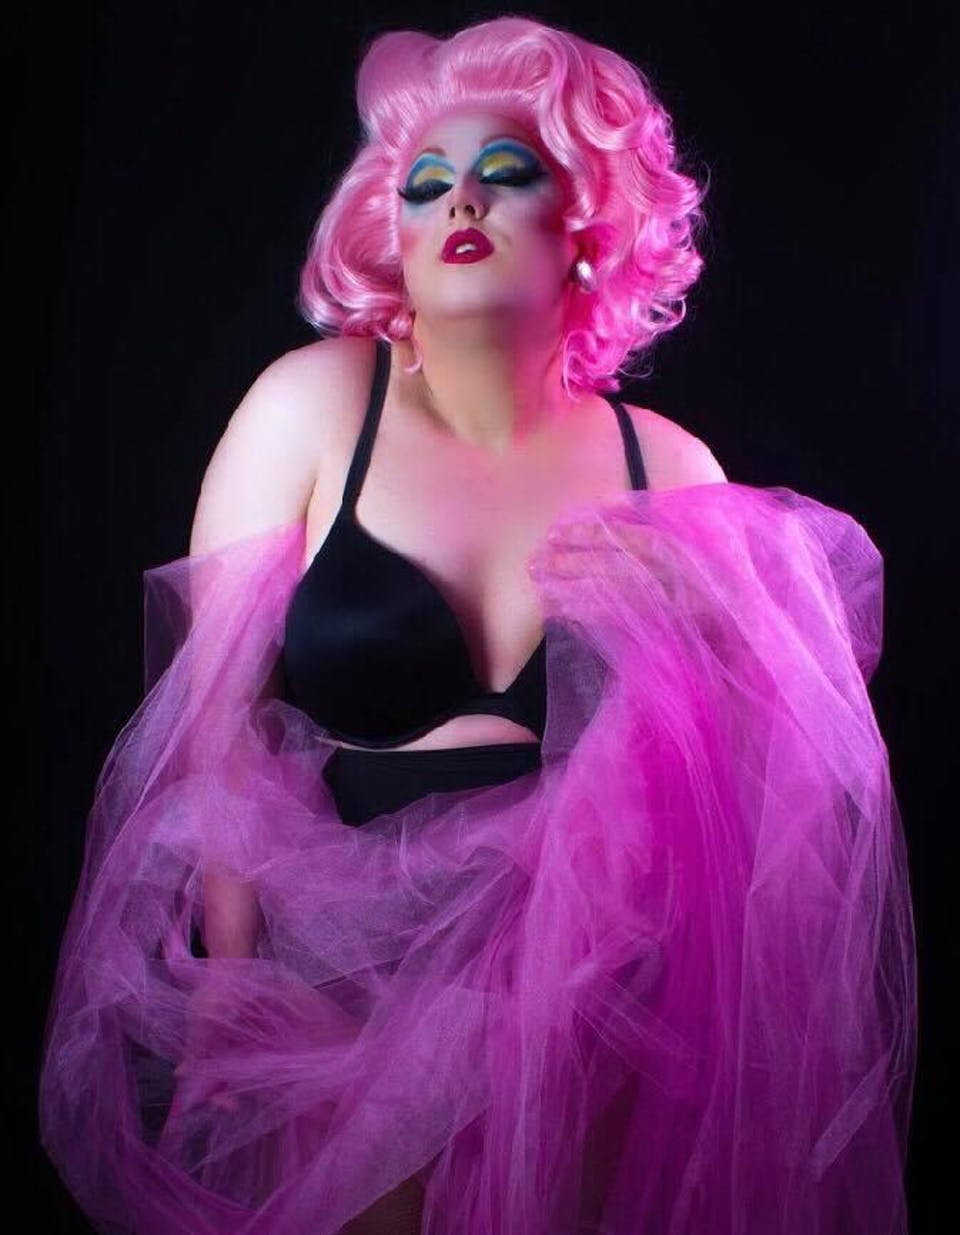 The 9th Annual International Ohio Burlesque Festival 2019